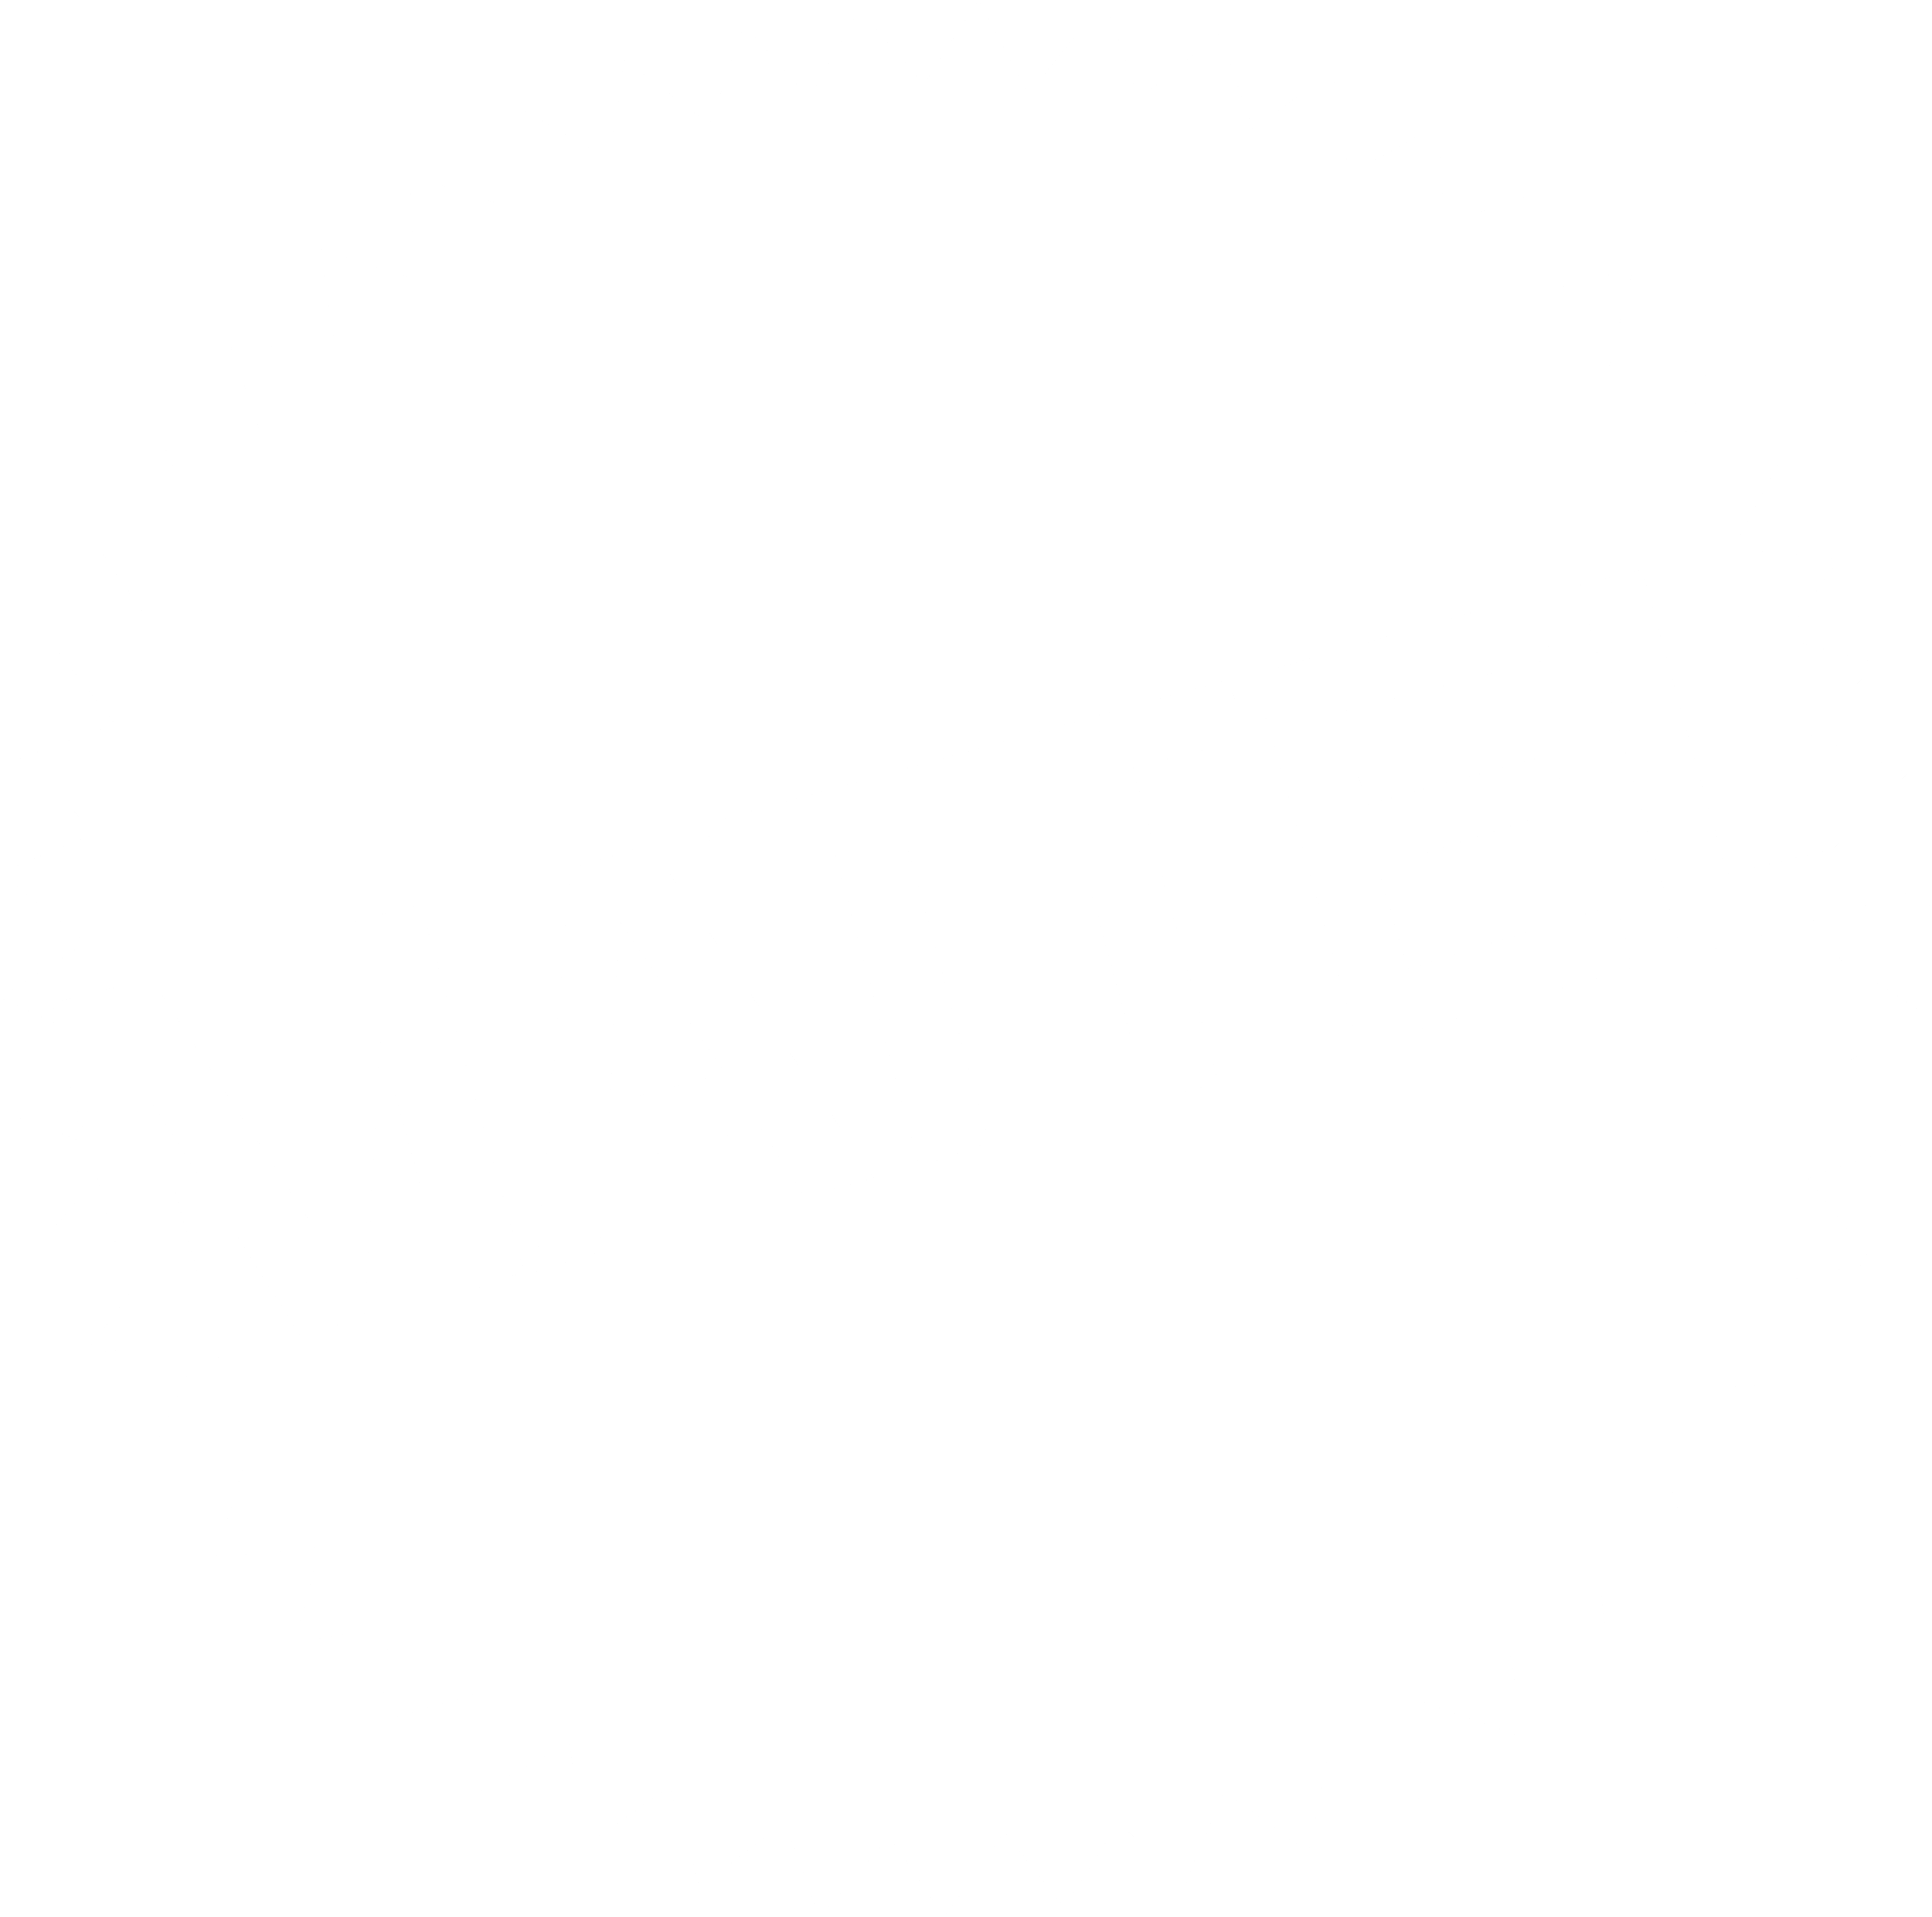 Download Hd Mattel Logo Black And White French Flag 1815 1830